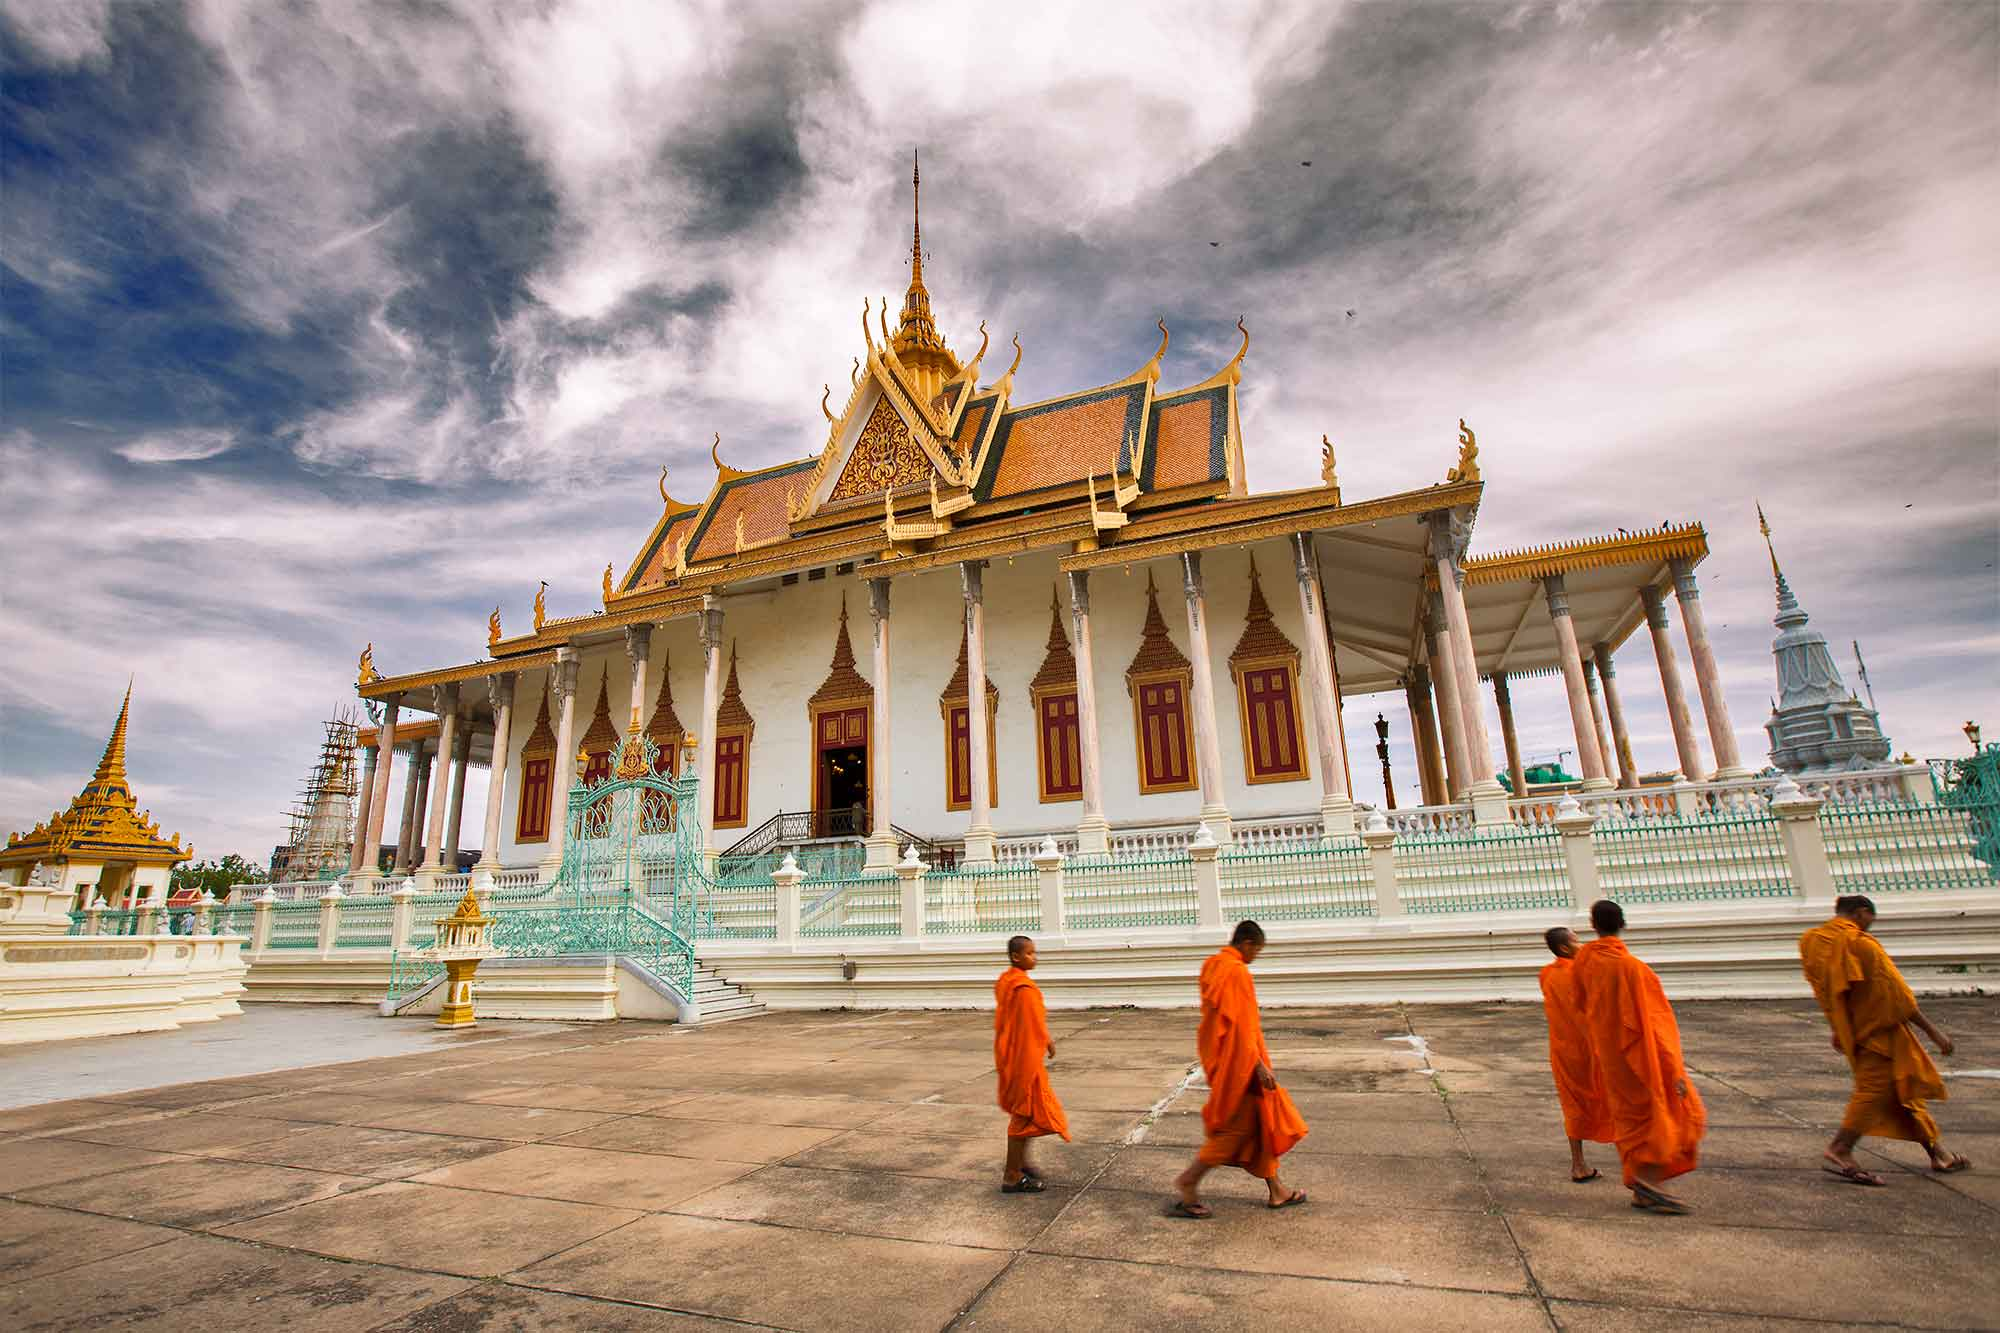 royal-palace-monks-phnom-penh-cambodia